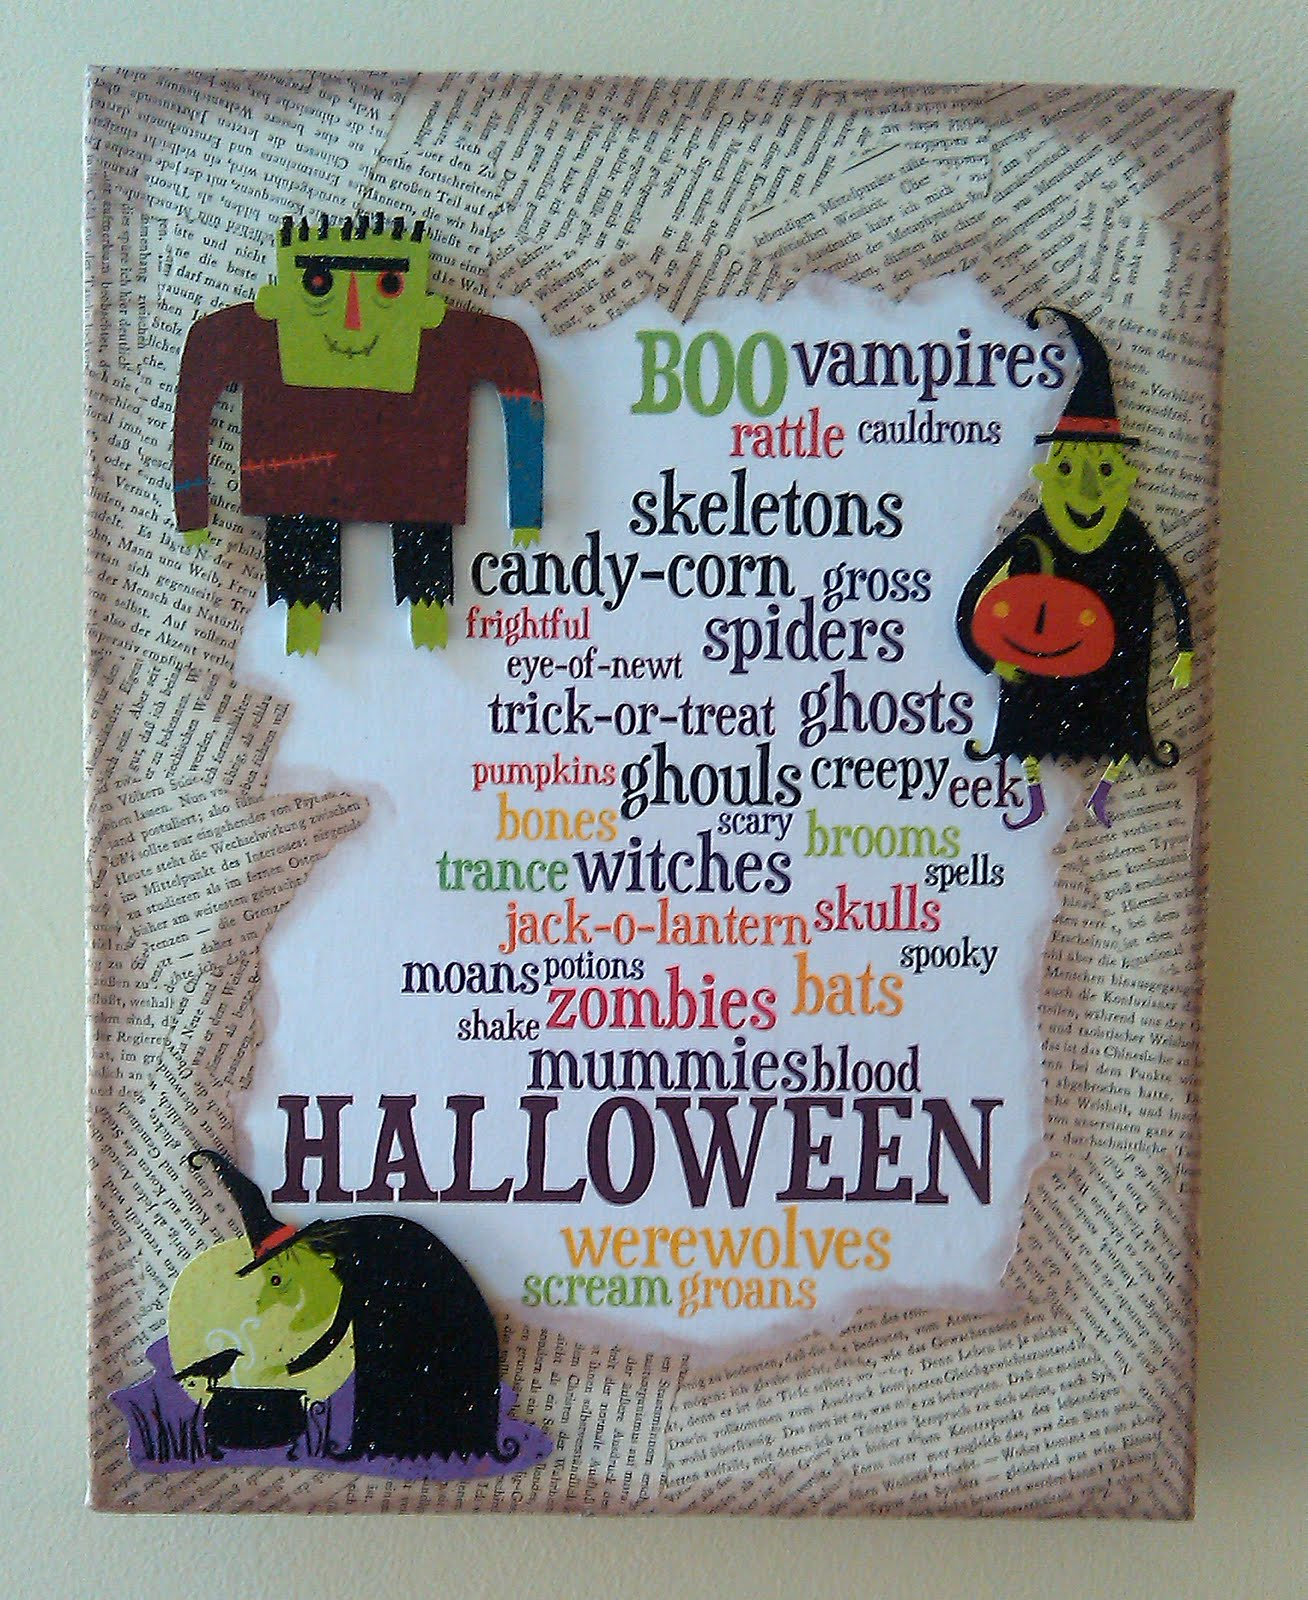 https://i1.wp.com/1.bp.blogspot.com/_VM_sXapgq6I/TJ9NKf6ue5I/AAAAAAAADOE/cAYWDGGvRUU/s1600/Halloween+Wordle+Art+copy.jpg